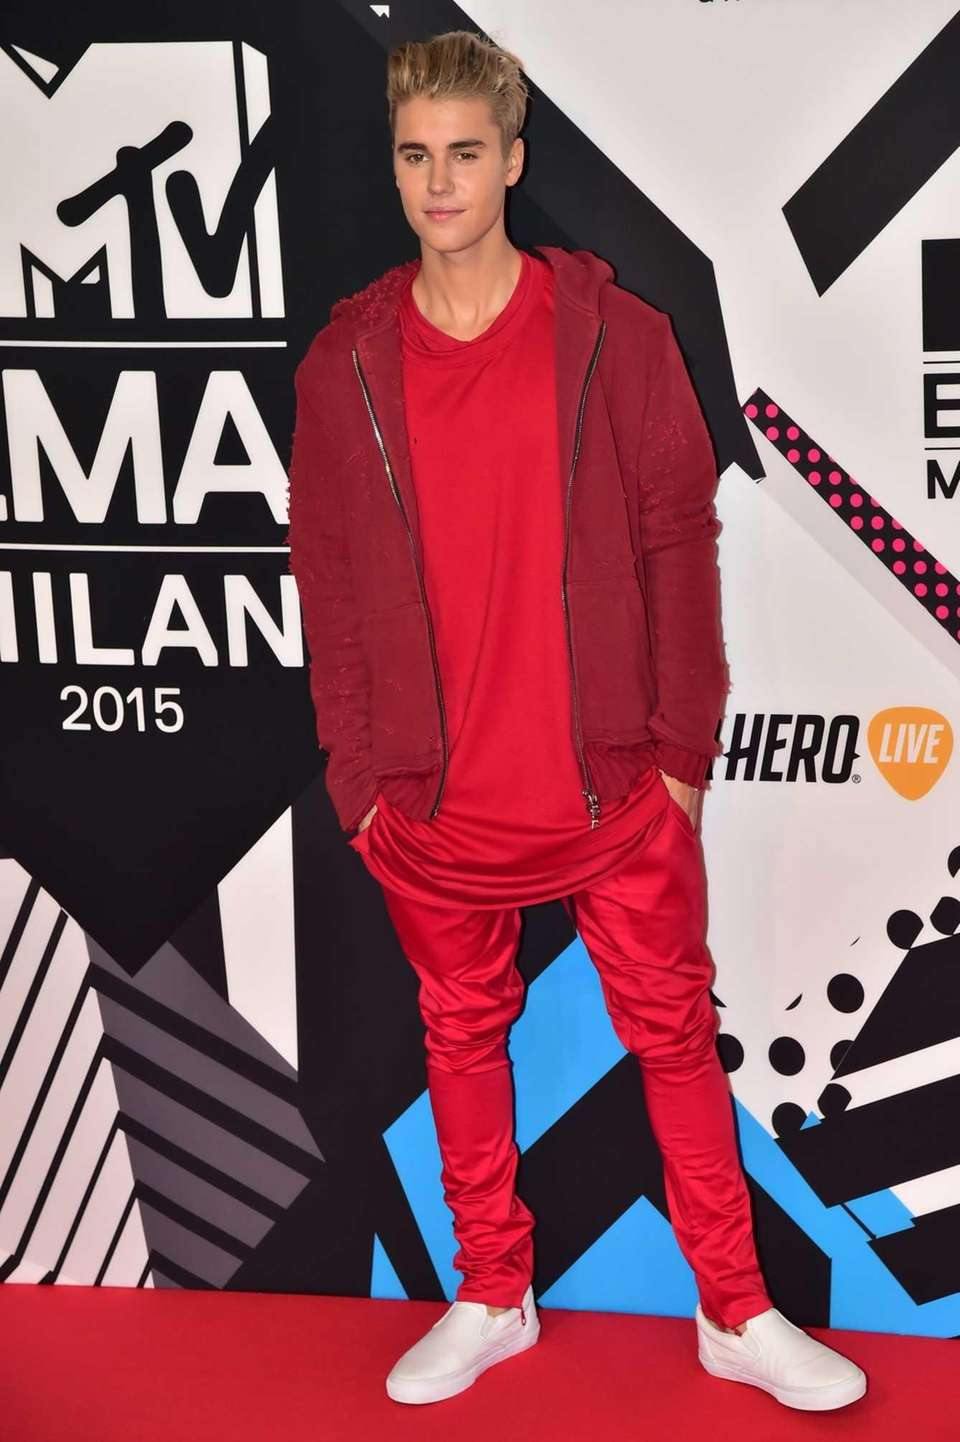 Justin Bieber arrives on the red carpet for